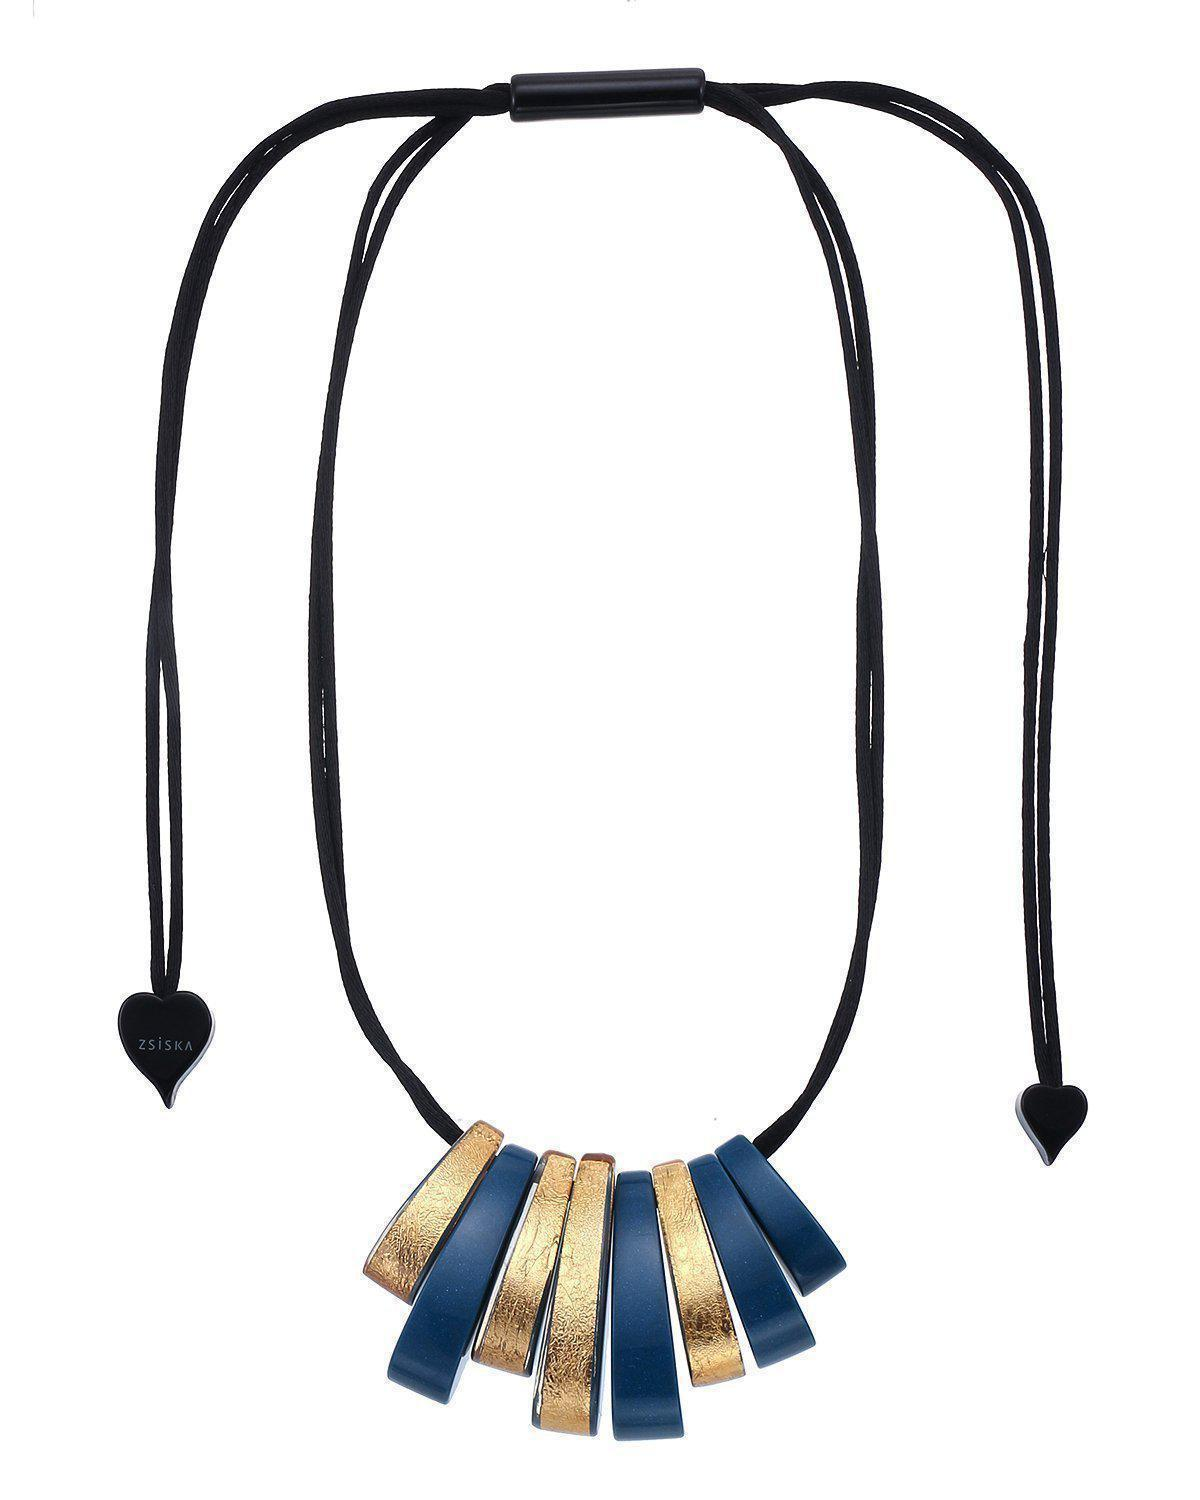 Zsiska Vogue Teal Blue and Gold Necklace